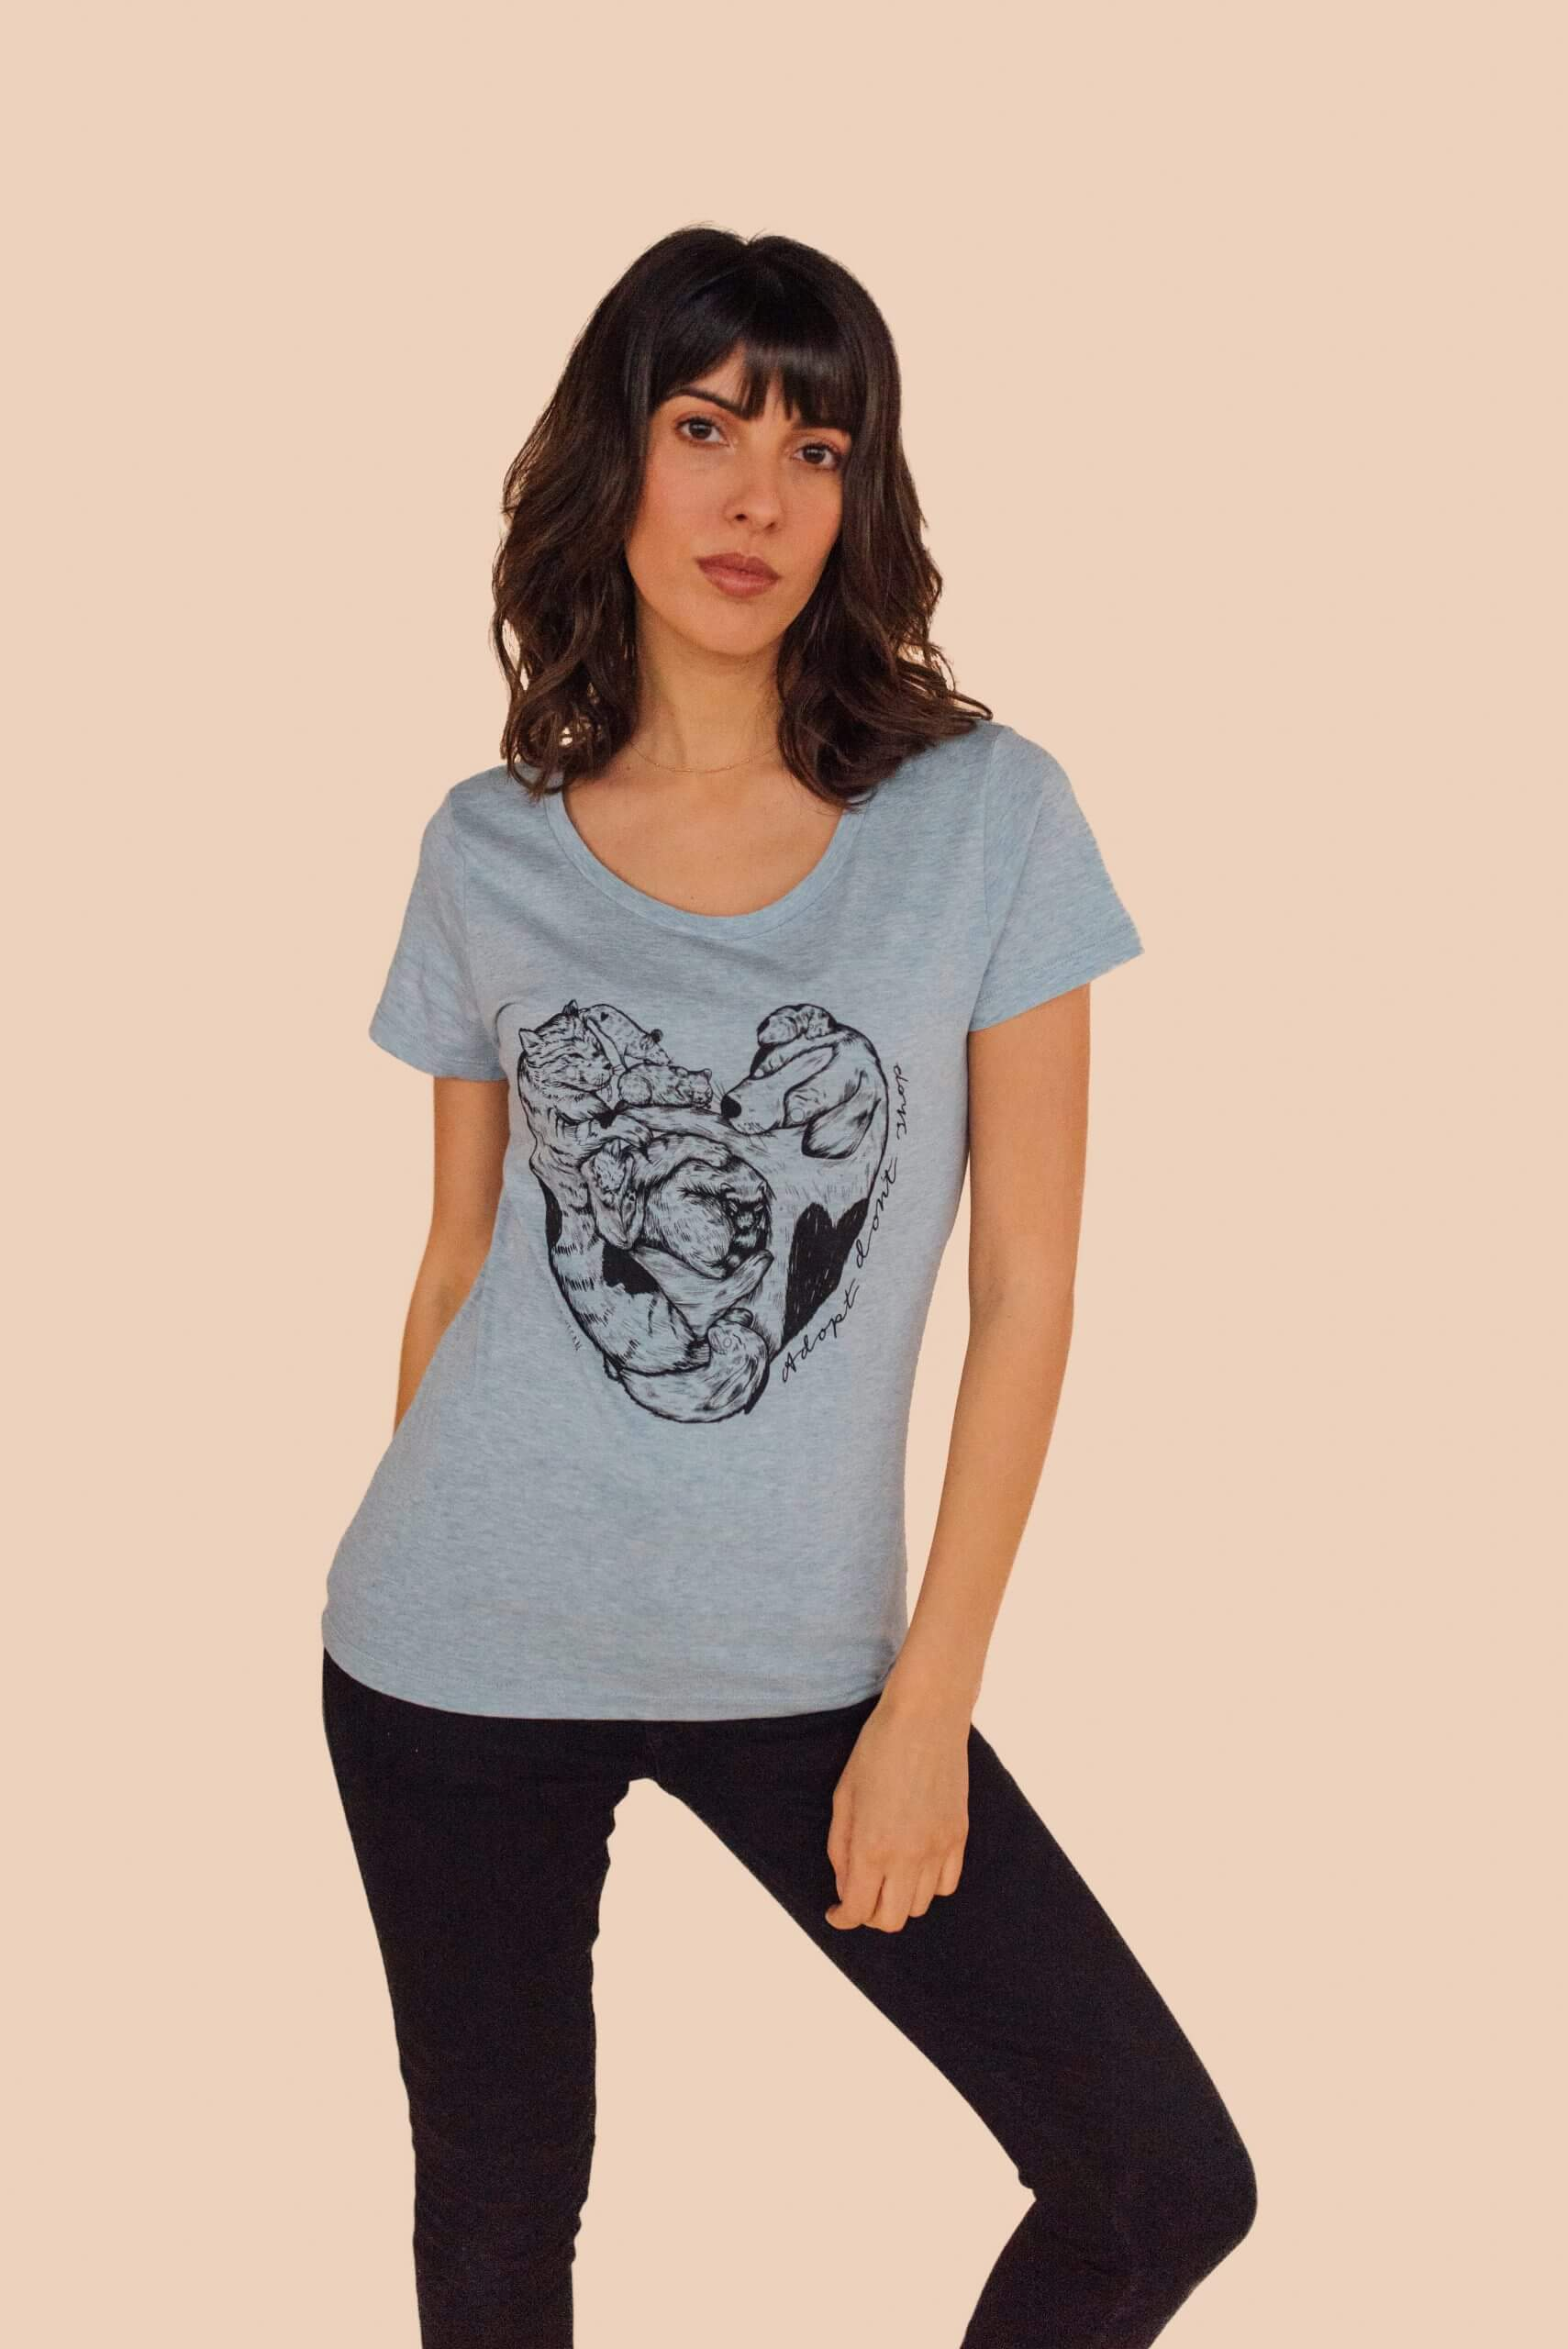 Vegan female model wearing blue organic tshirt with adopt dont shop statement graphic